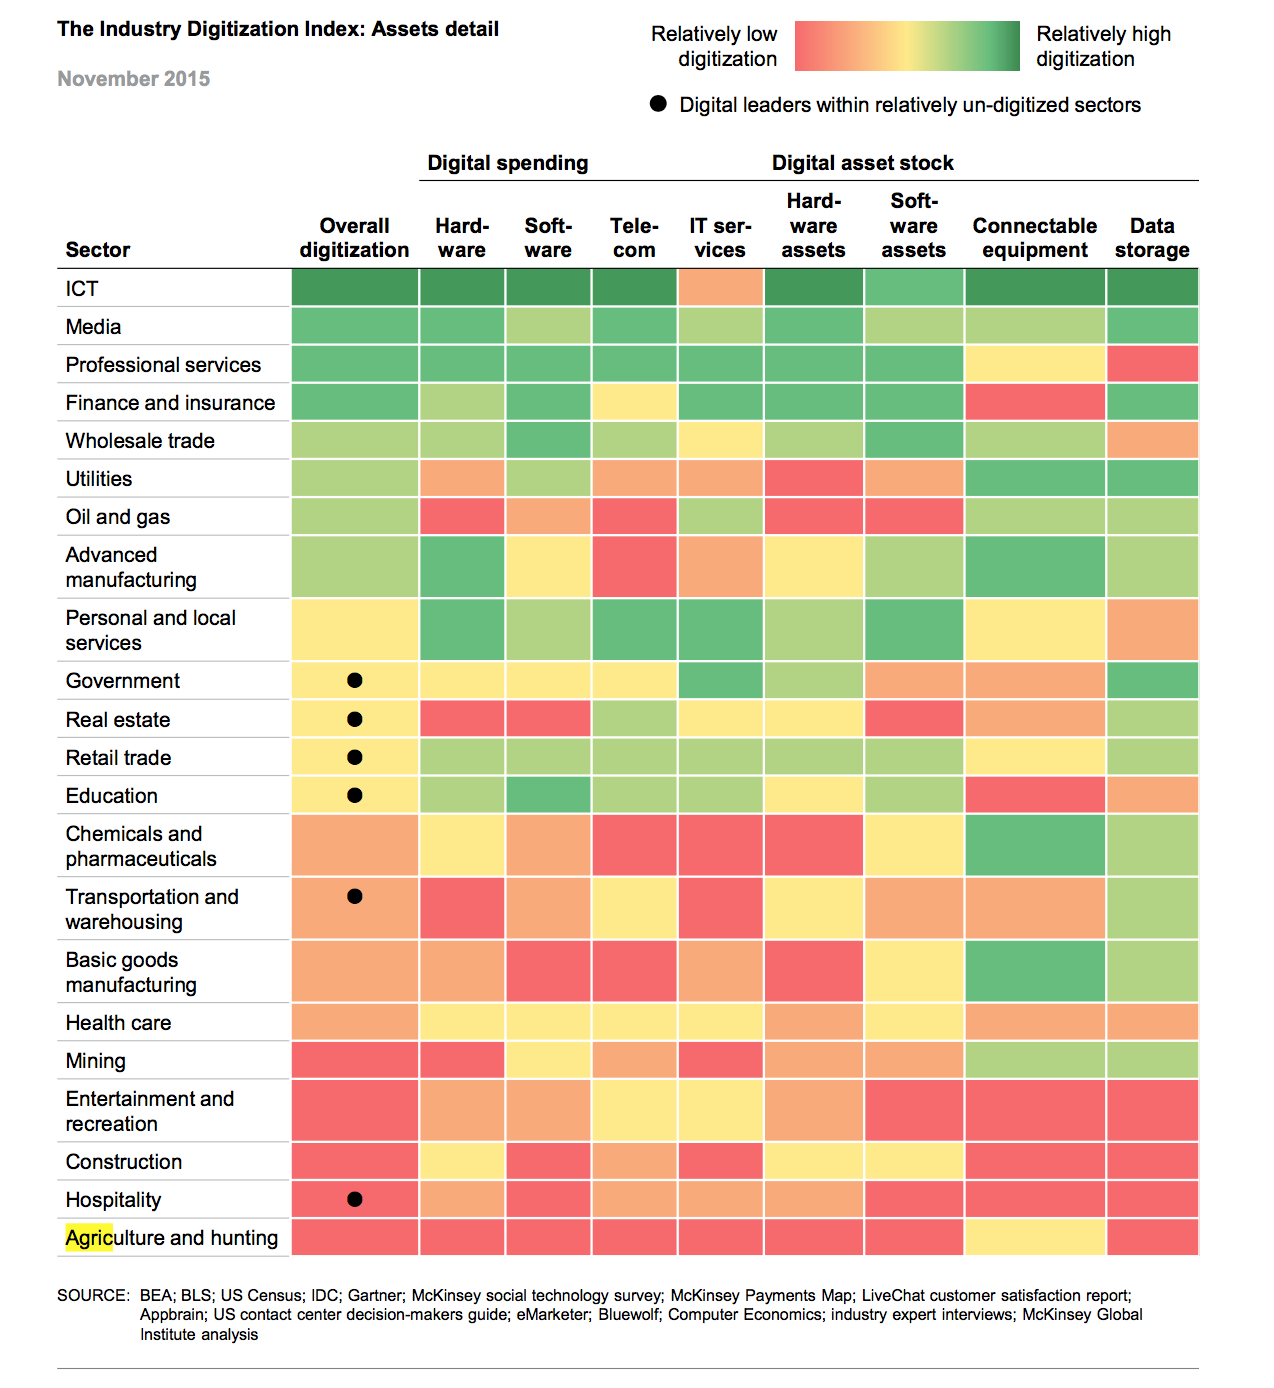 Image from: 2015 Industry Digitization Index —Mckinsey Global Institute